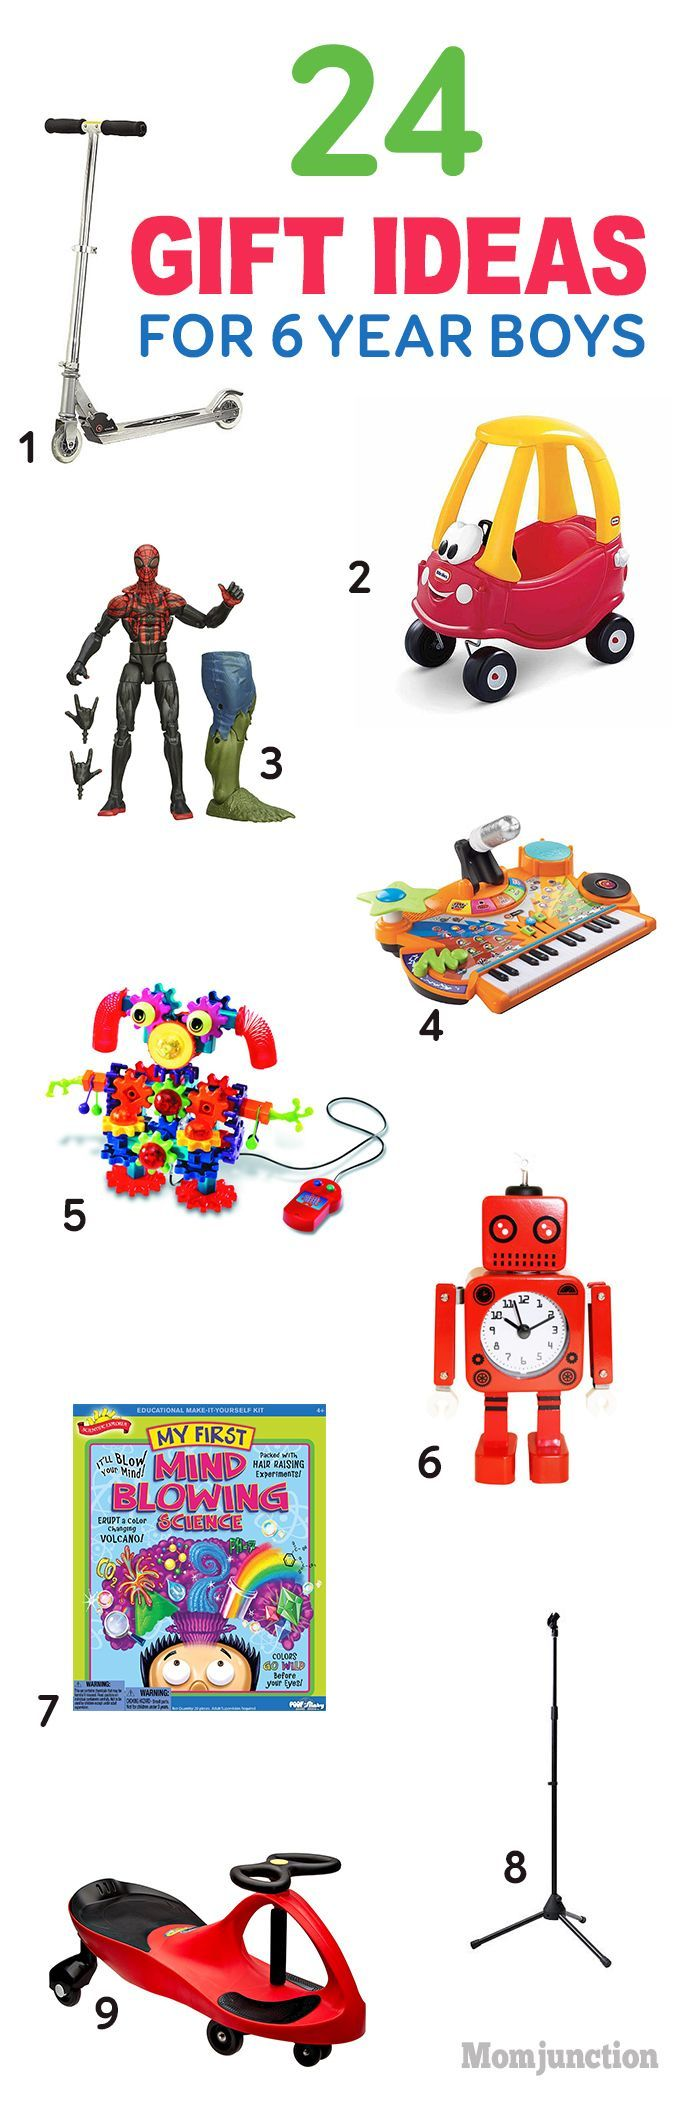 Toys For 17 Year Olds : Best images about toys for year old boy on pinterest